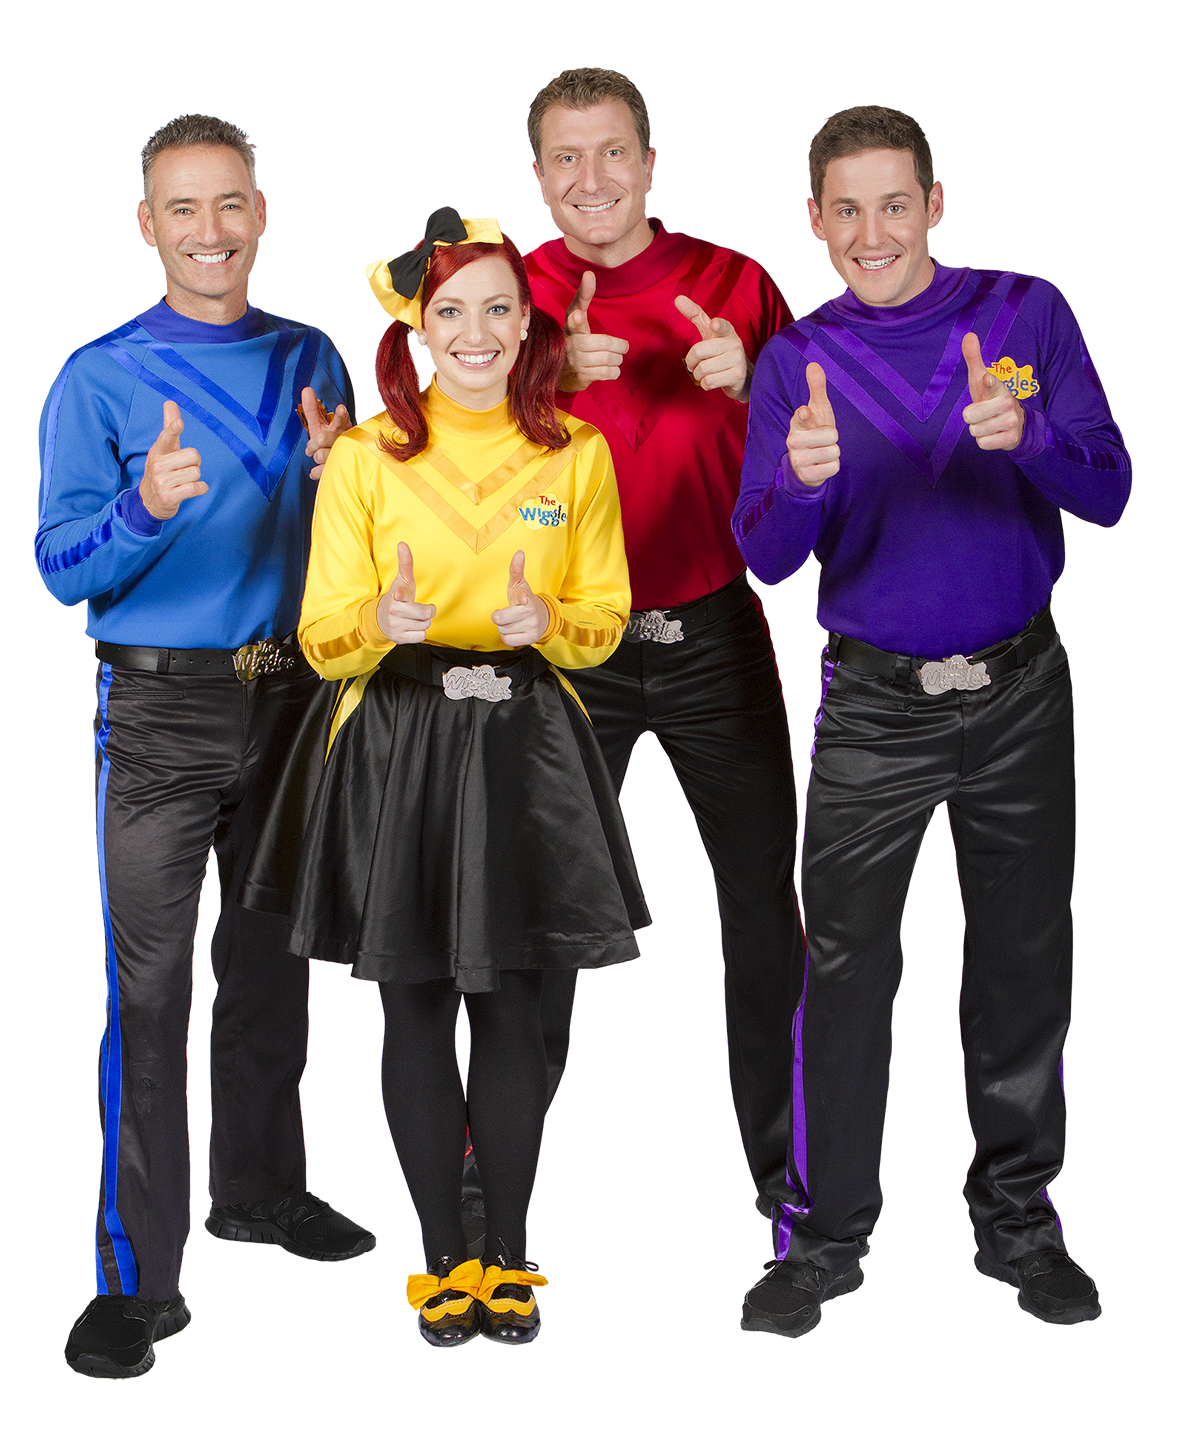 The Wiggles - Emma Watson Interview